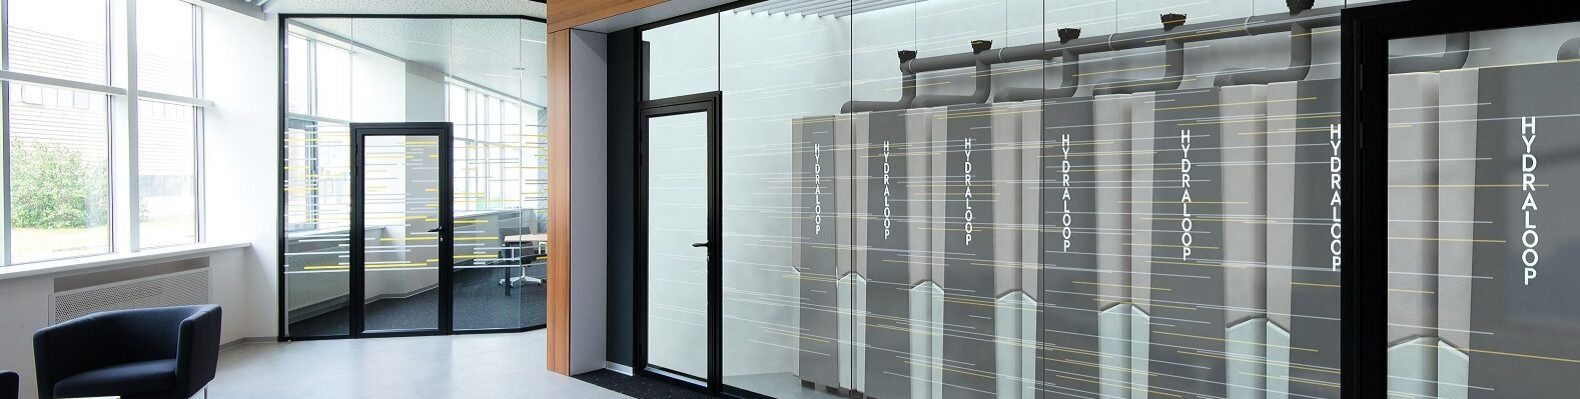 Glass door in an office revealing row of gray water recycling machines